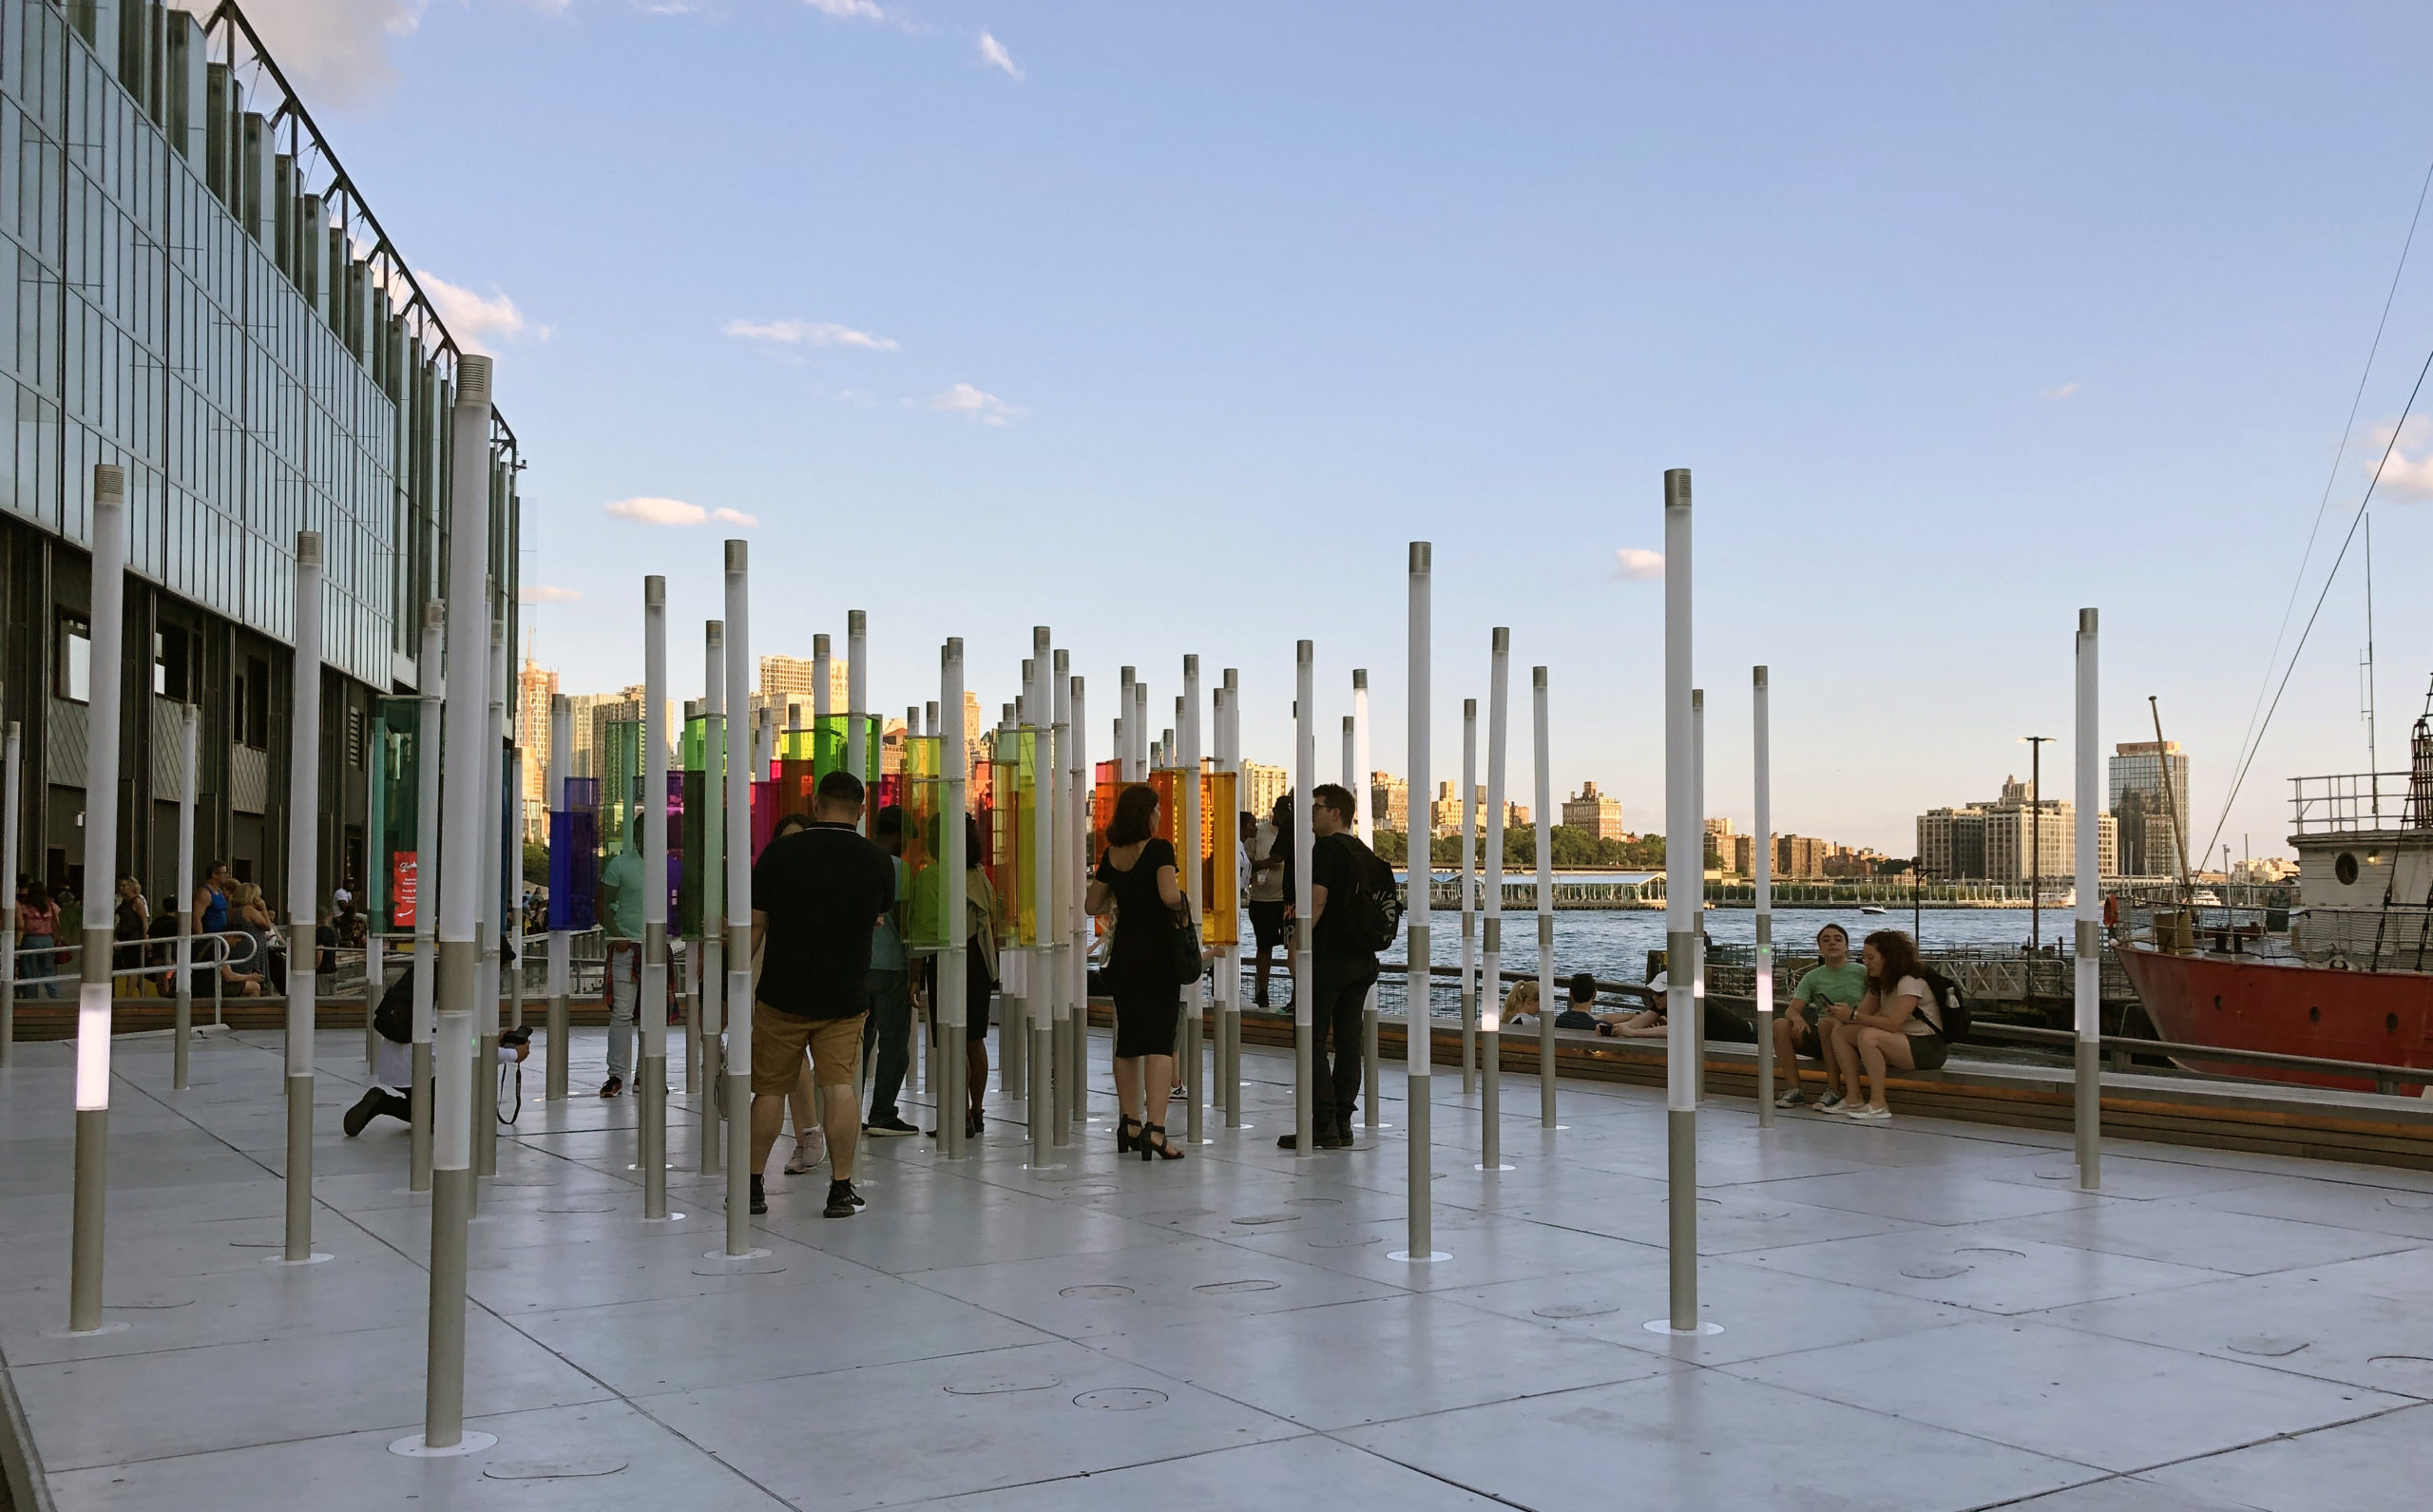 South Street Seaport Art in NYC